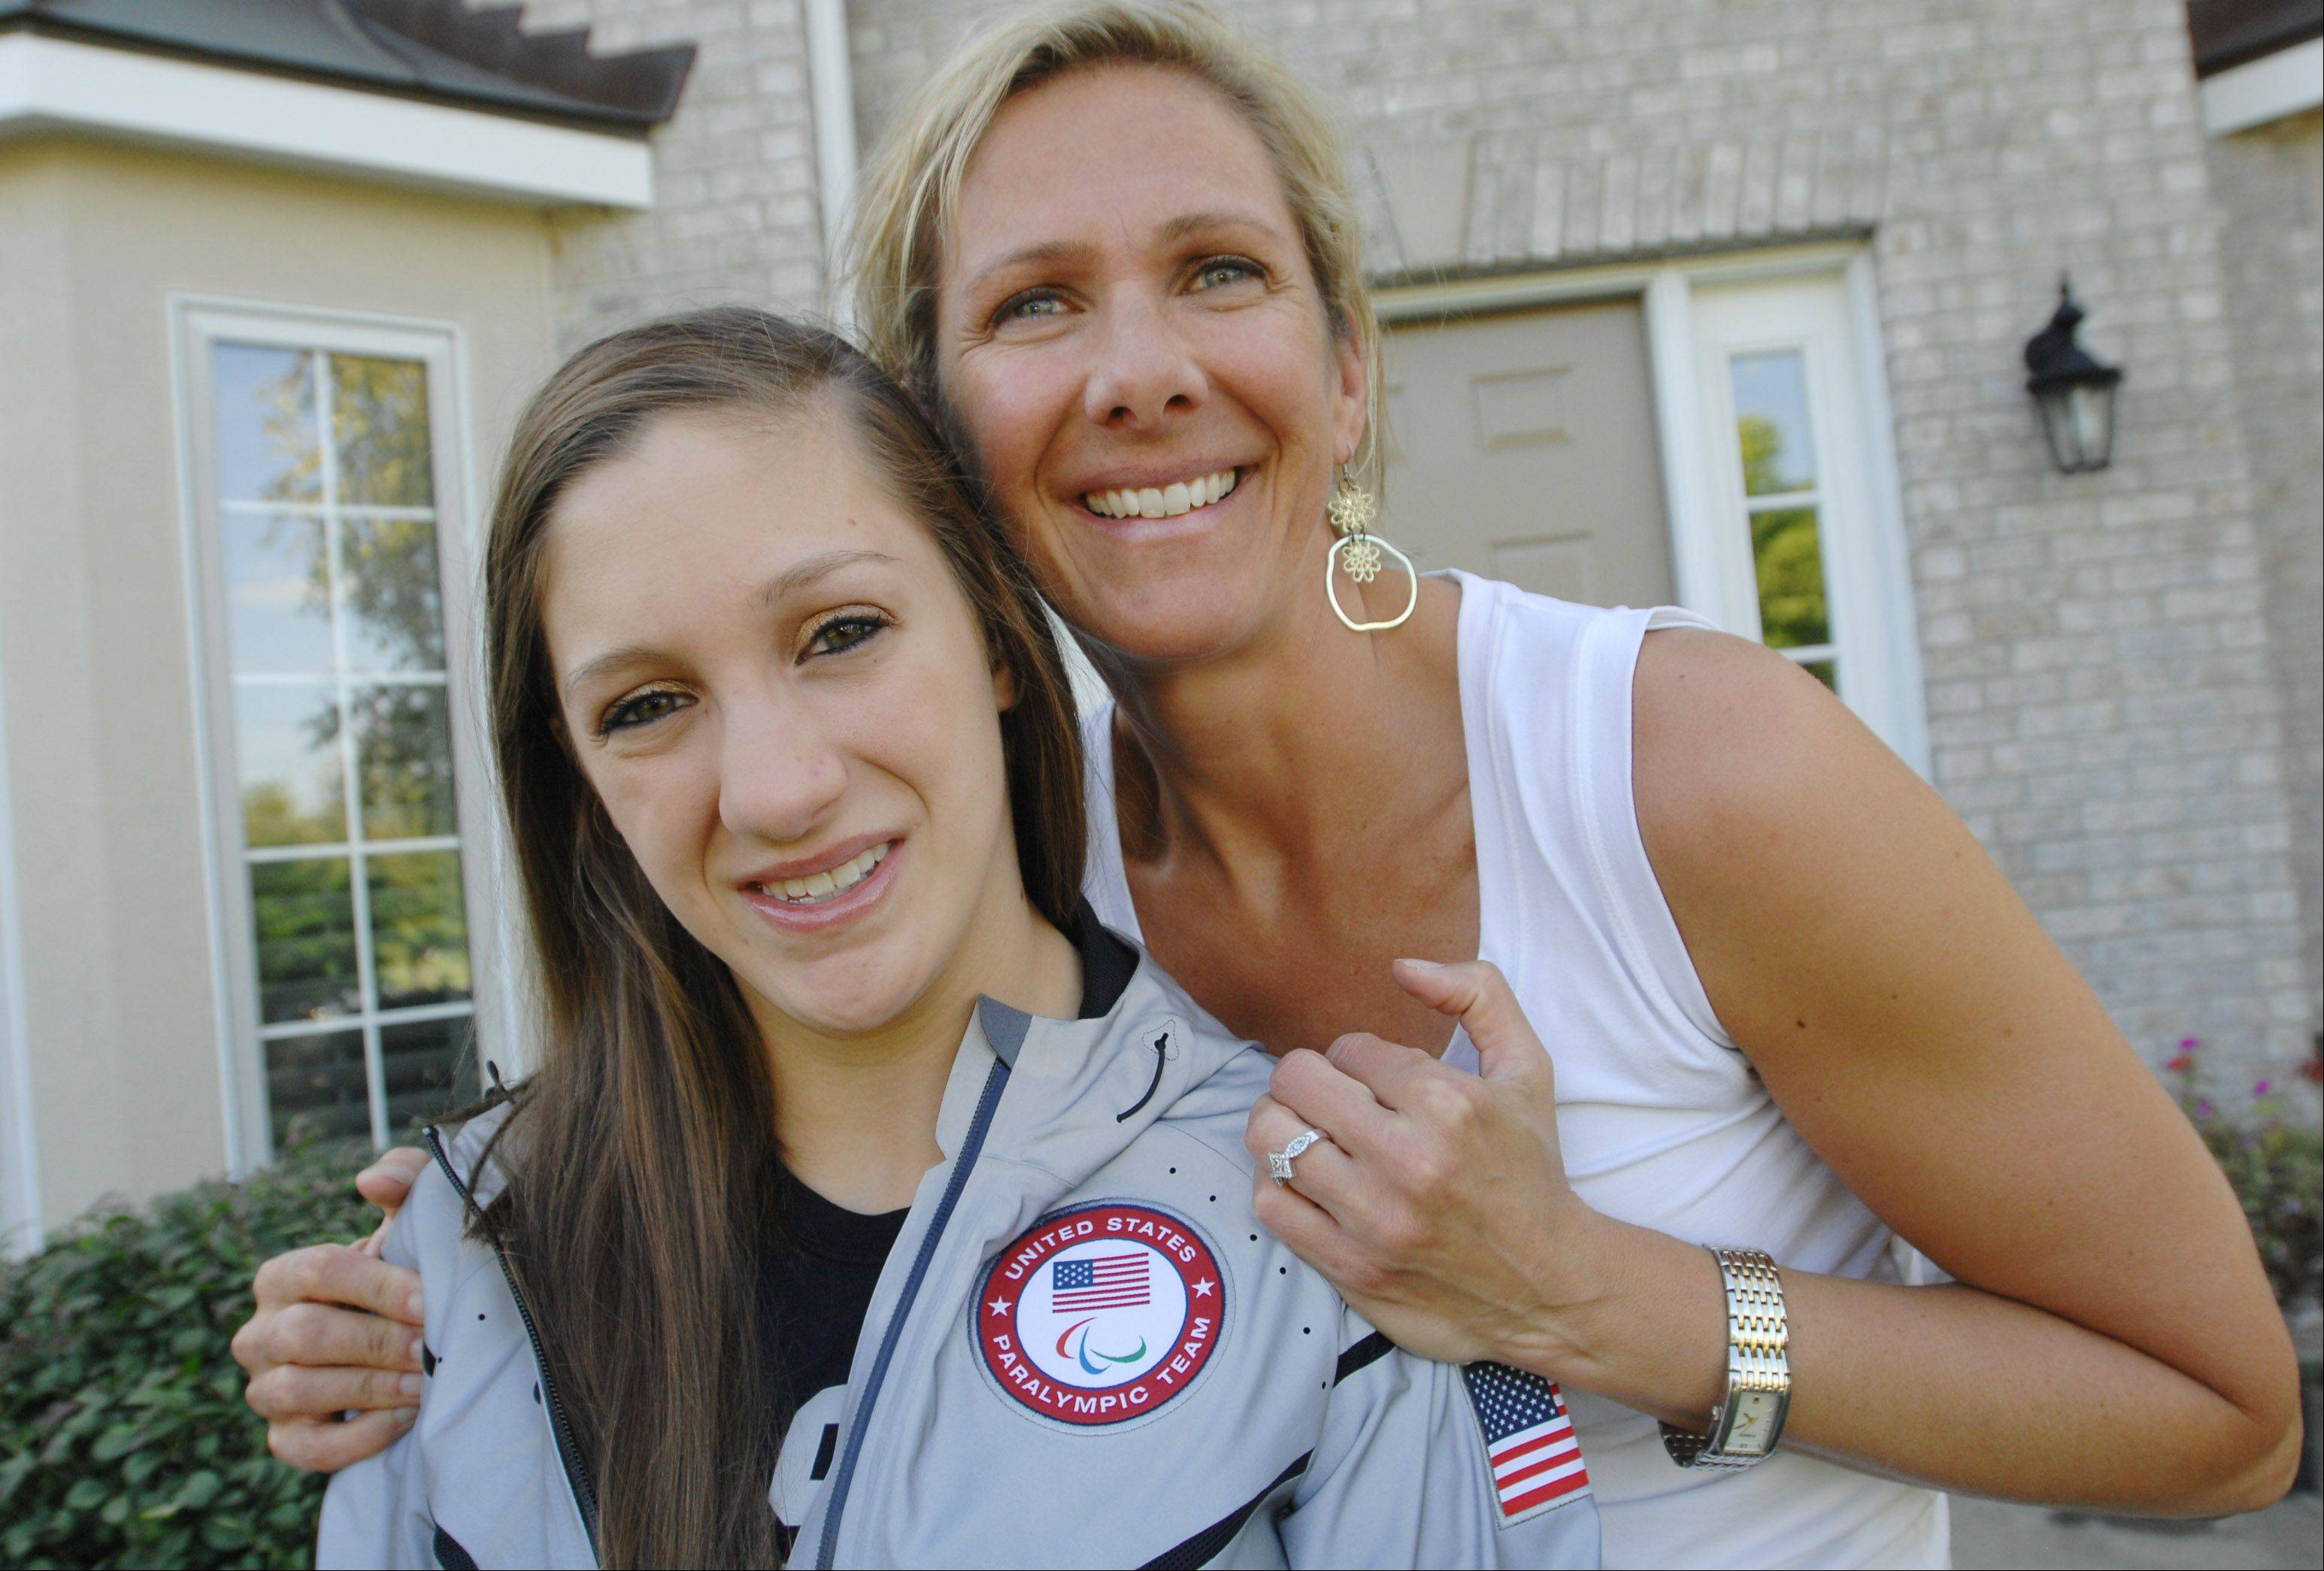 Naperville paralympian swimmer Alyssa Gialamas sports her podium jacket from the London Games at her family's Naperville home Wednesday. She is pictured with her mother, Lisa. She did not win any medals, but she looks forward to 2016.